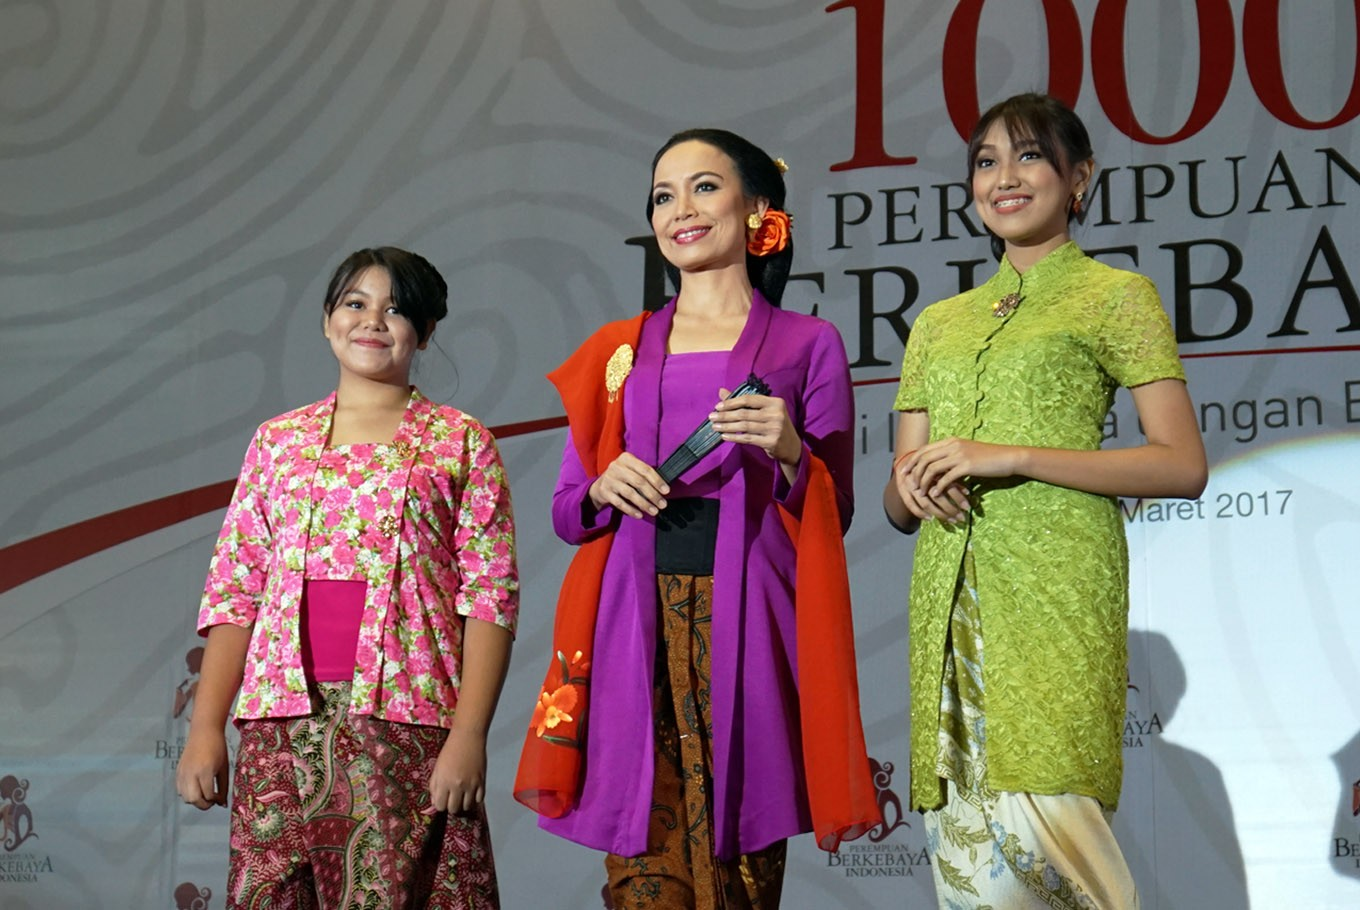 Cultural movement seeks Indonesian women to wear, preserve kebaya  Art  Culture  The Jakarta Post